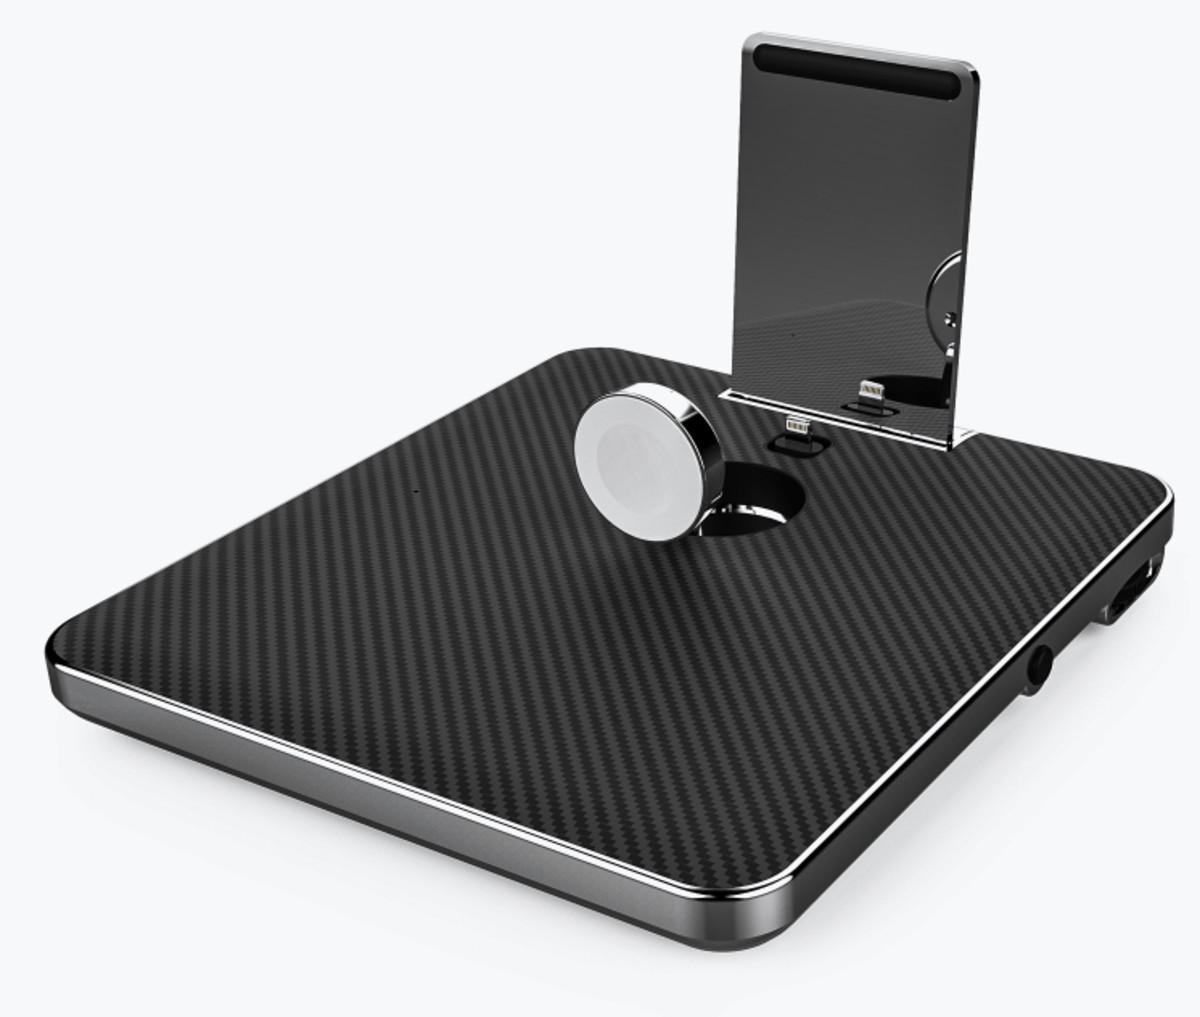 pitaka-air-trio-worlds-first-wireless-charging-dock-to-charge-all-your-apple-devices